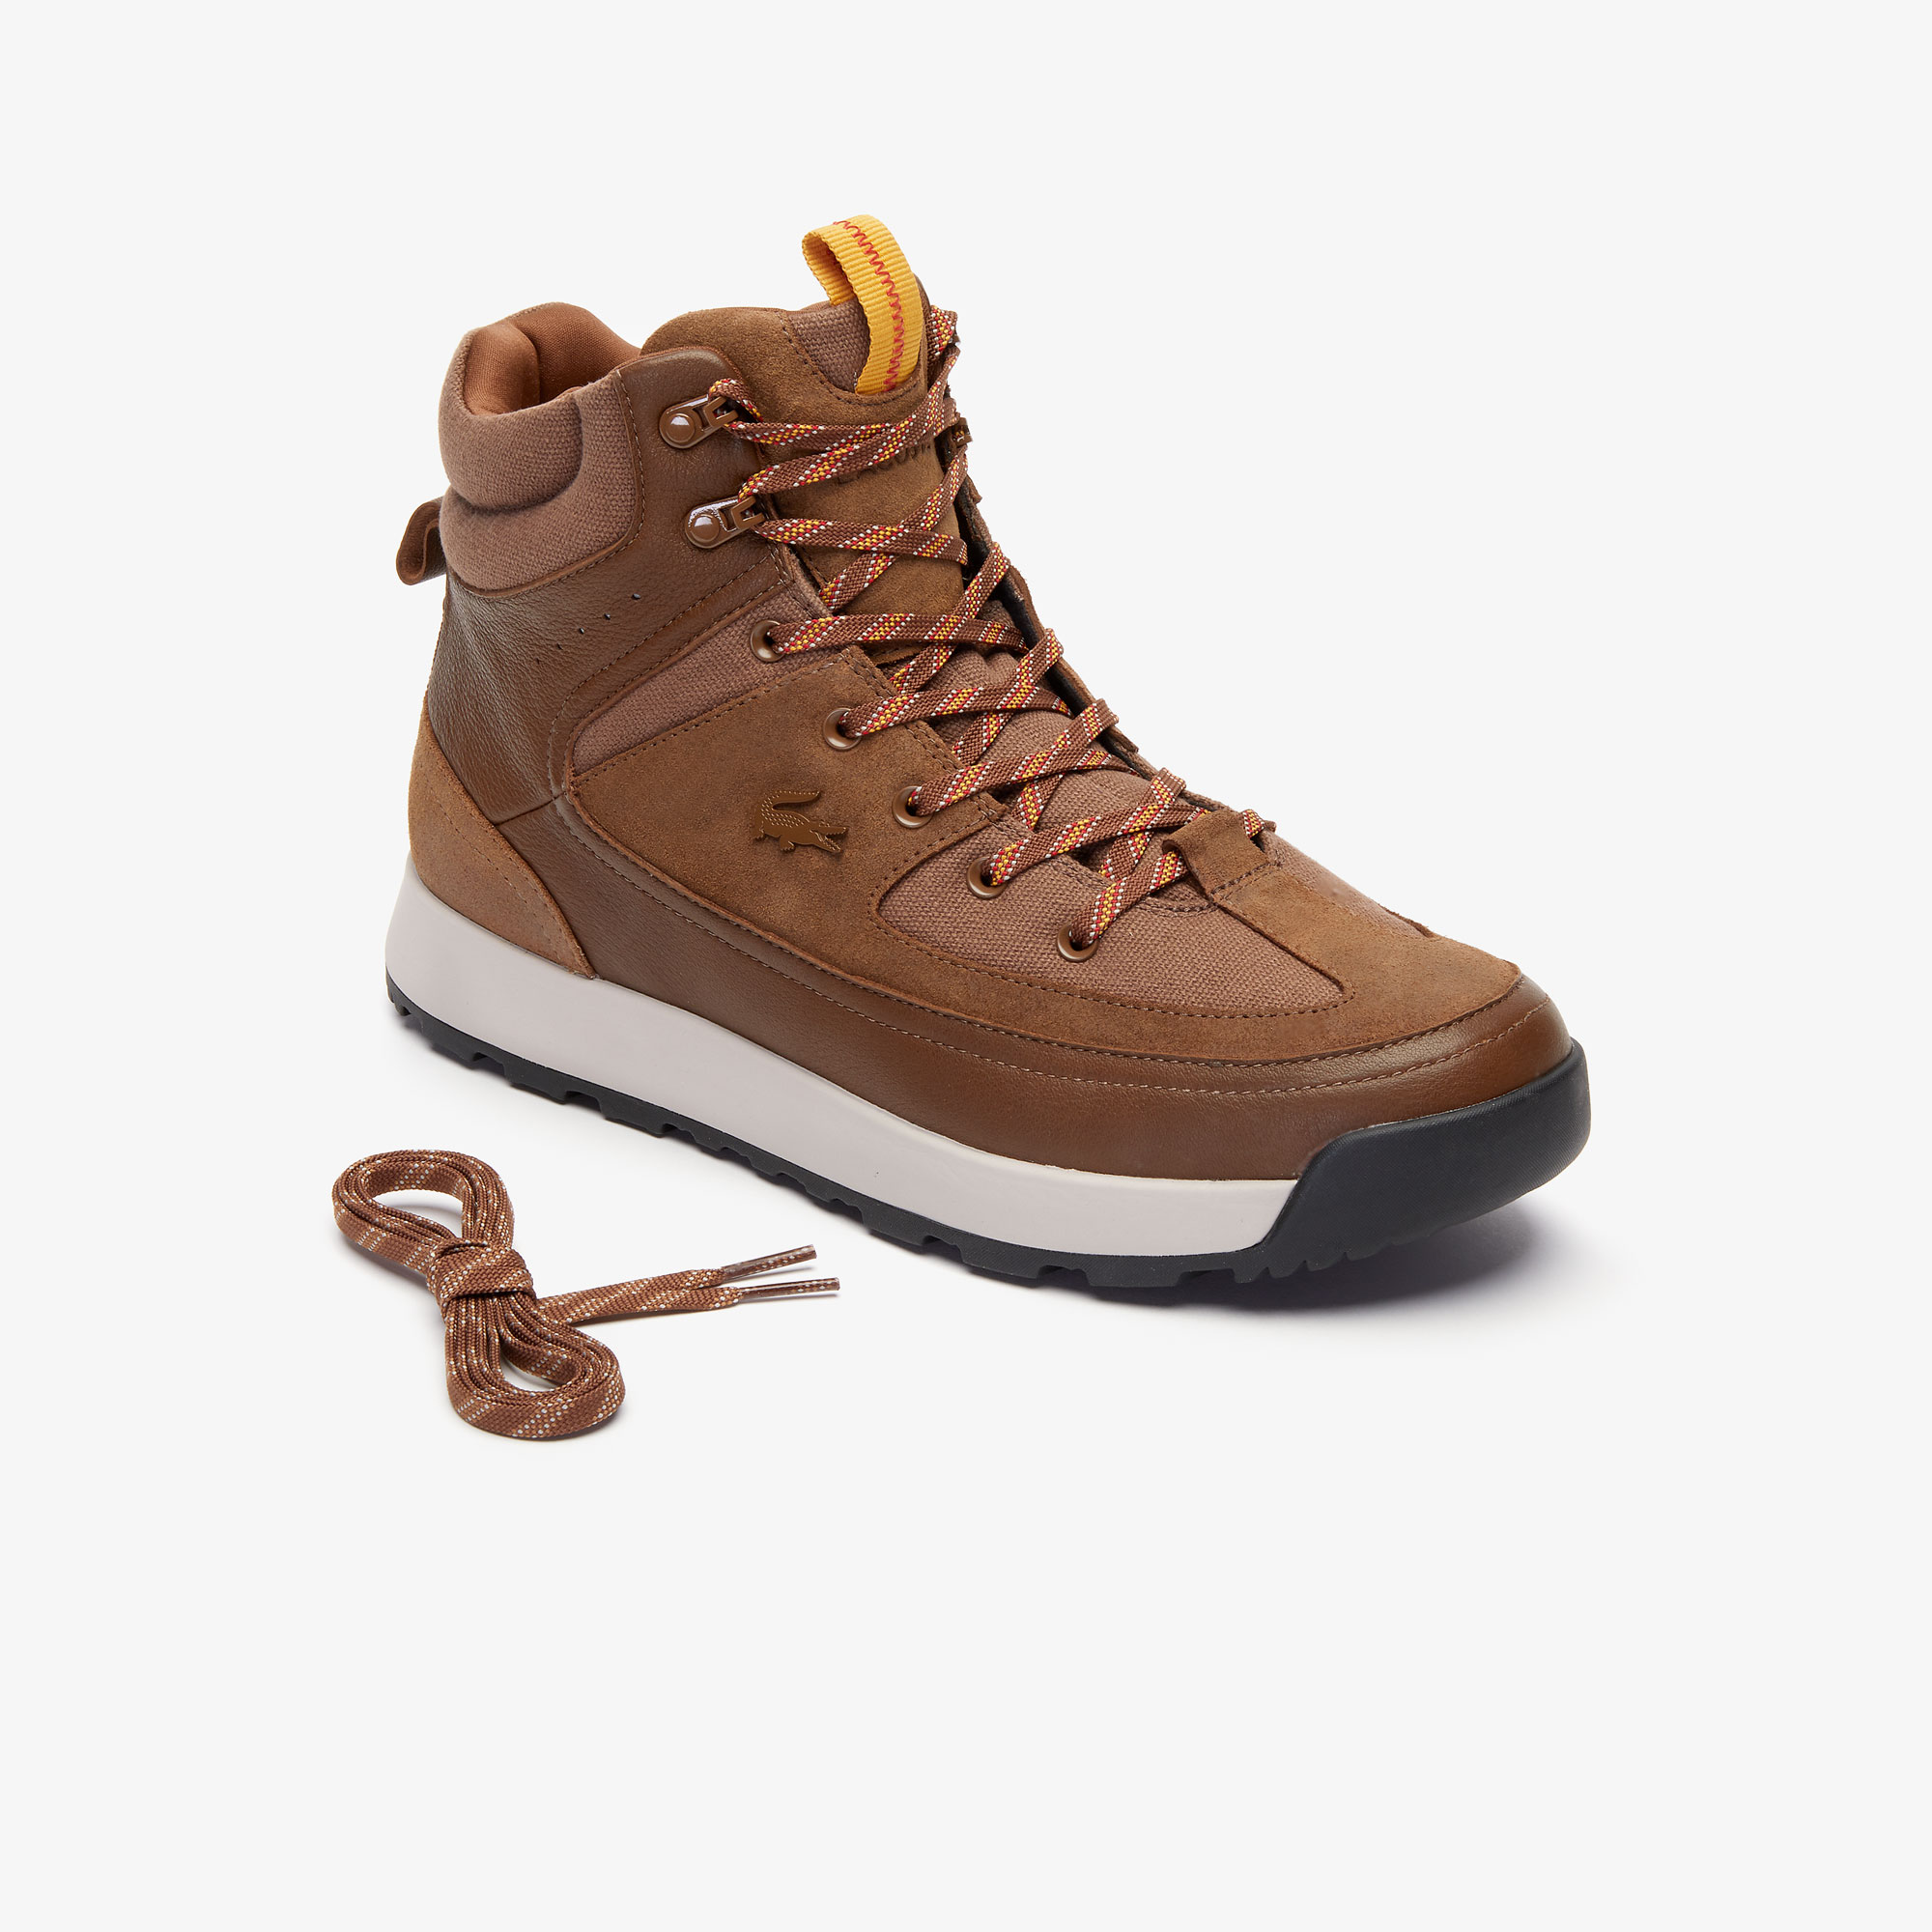 Men's Urban Breaker Leather Hiking Boots